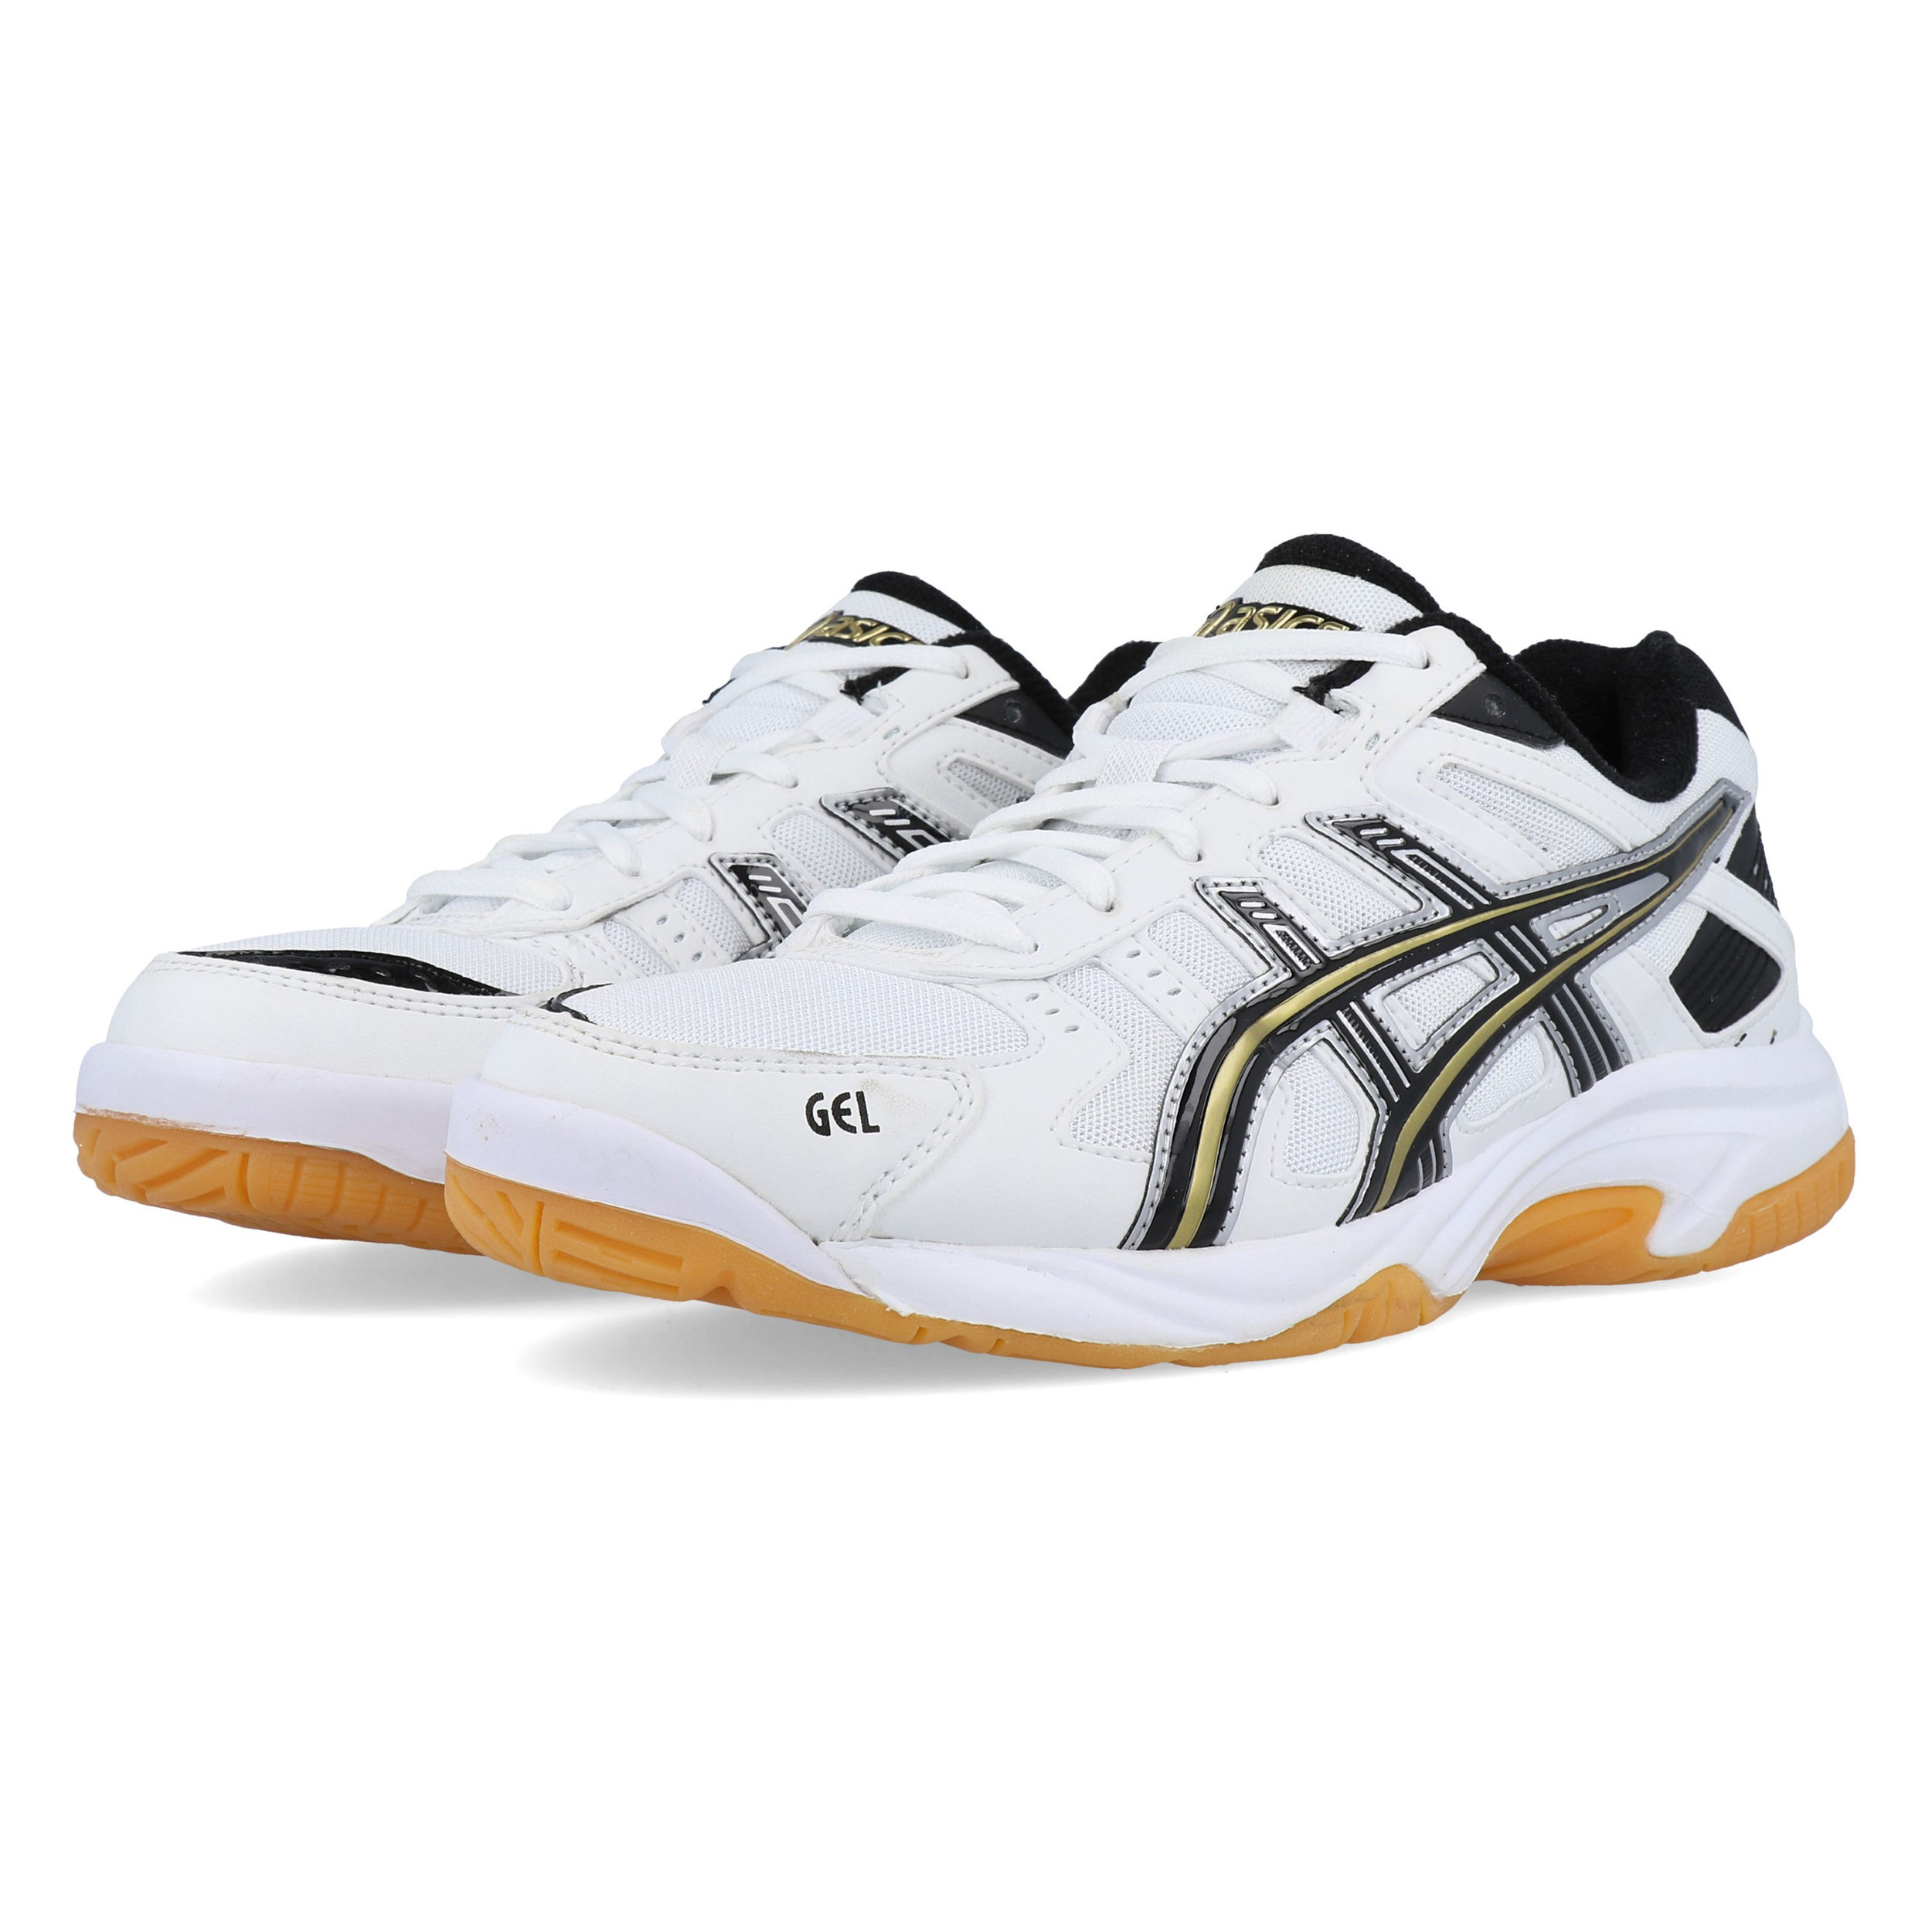 Junior Spike Sports Badminton Indoor Shoes Gel Asics Court White Gs PiXZTlwOku